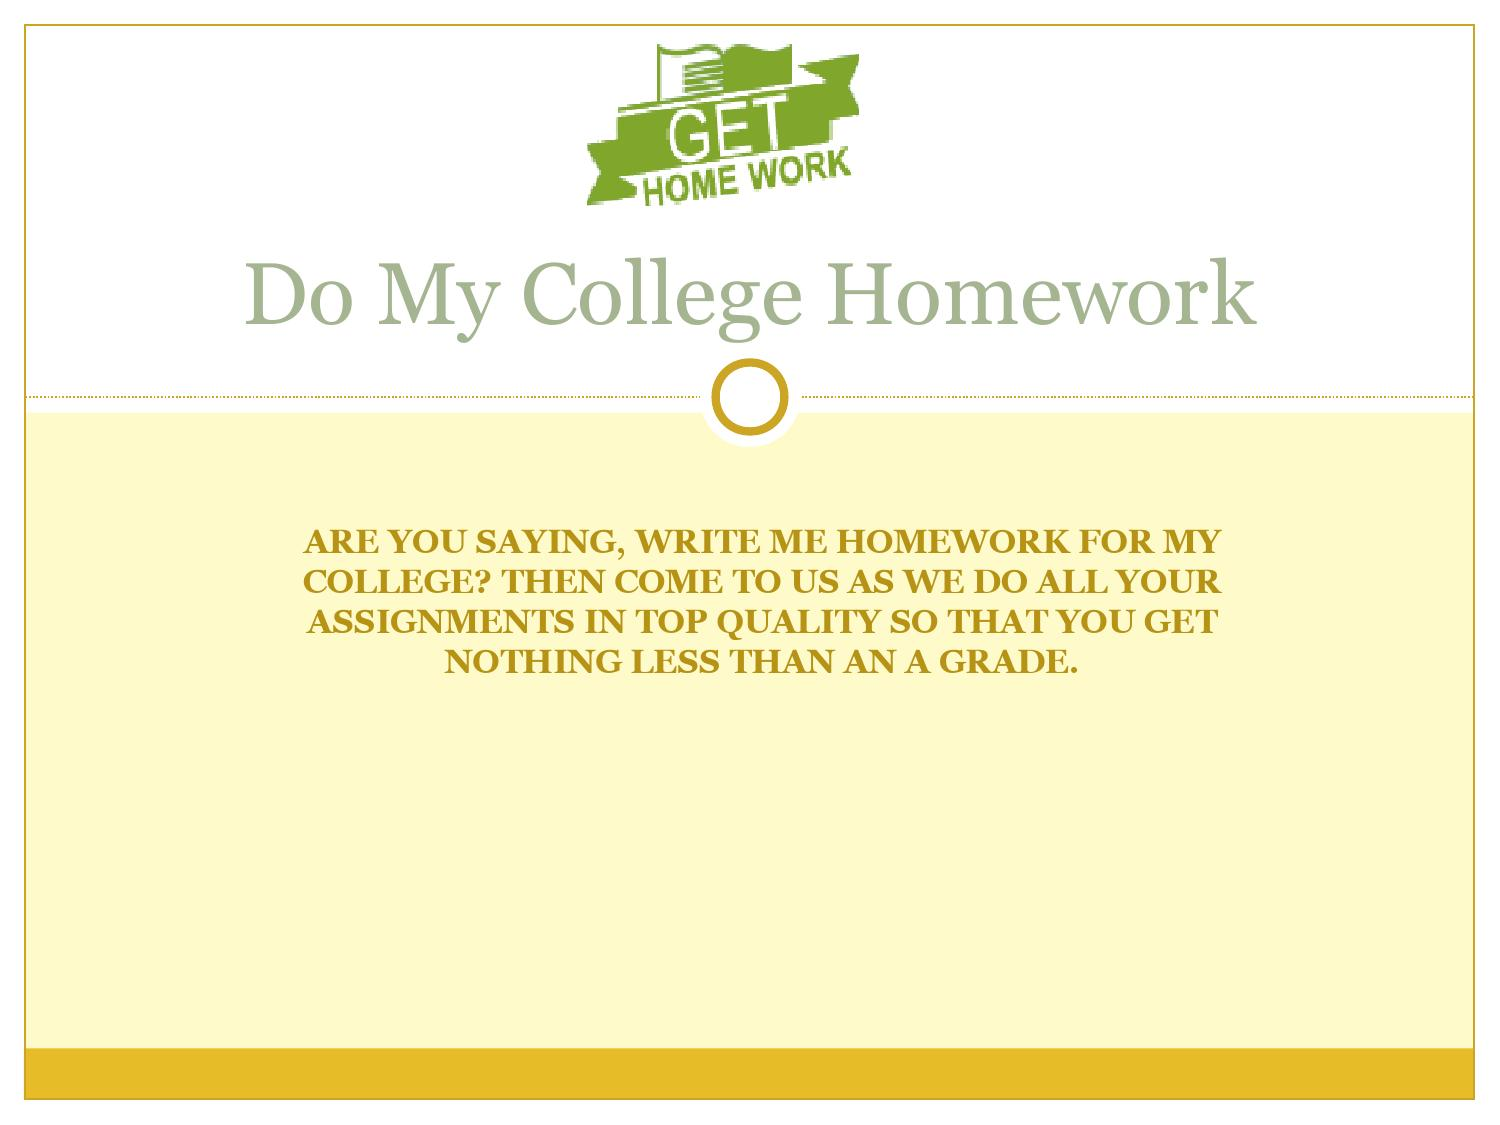 Do my college homework for me